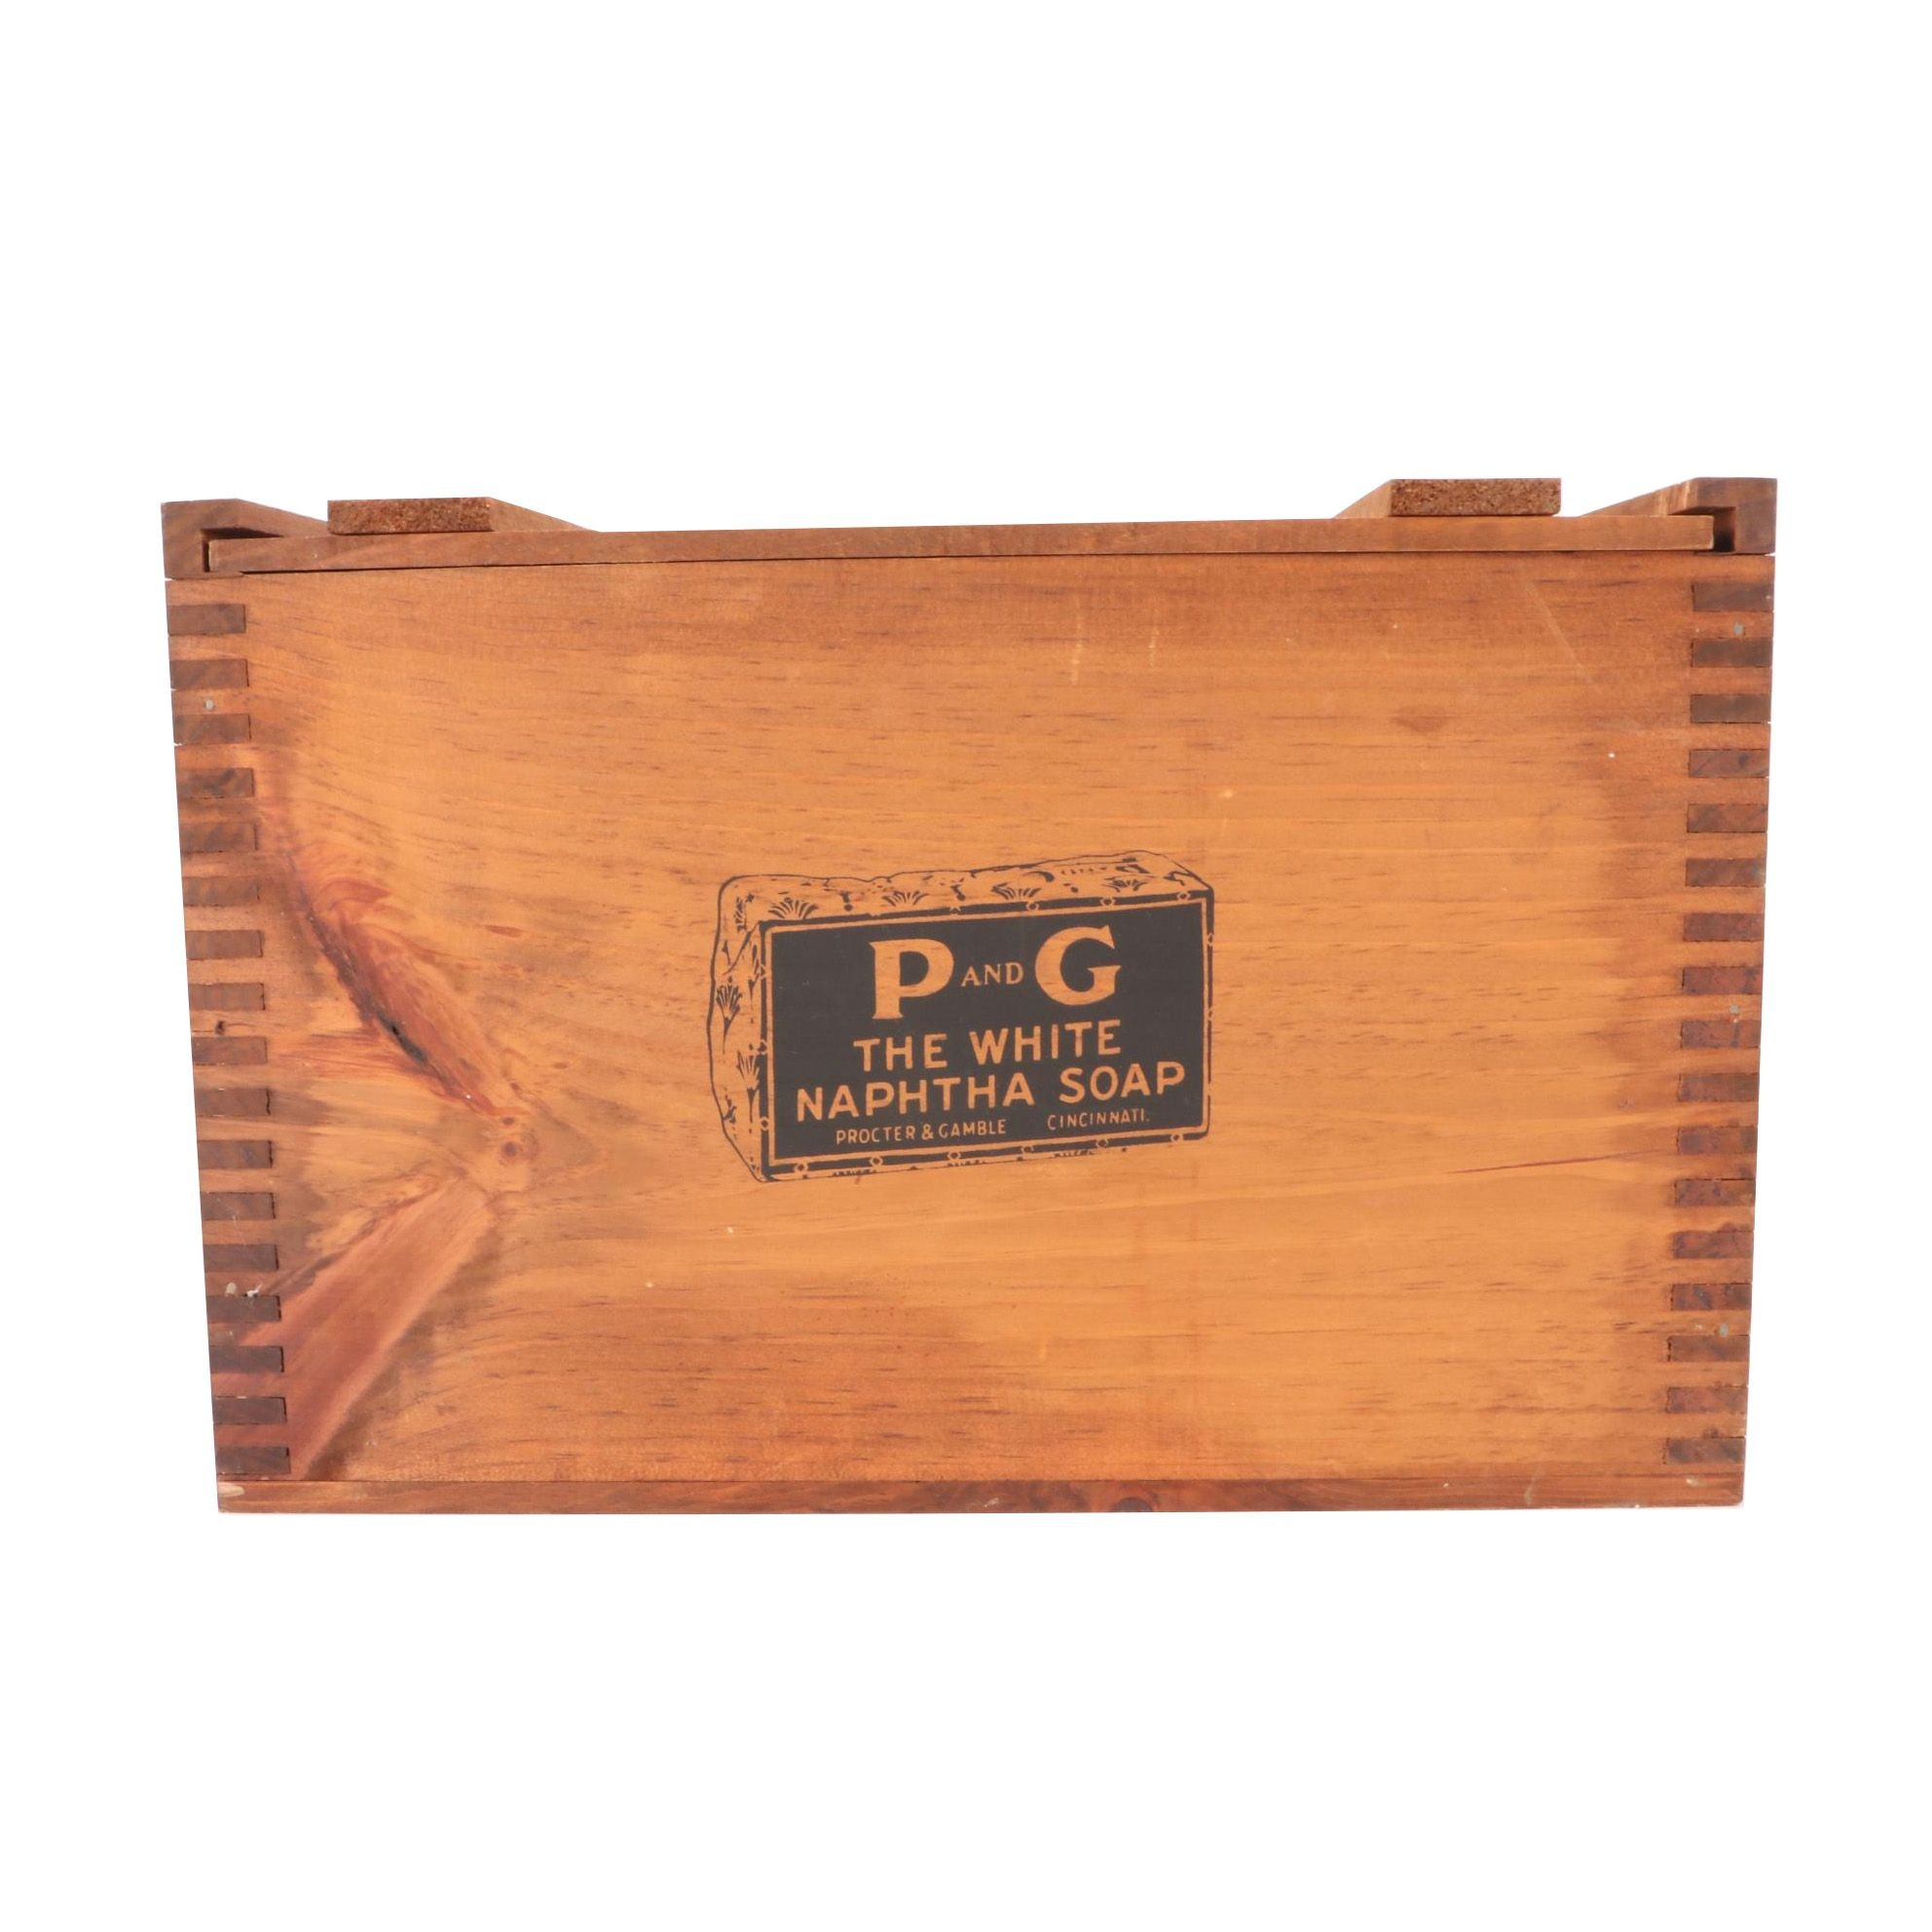 Commemorative Procter and Gamble Wood Soap Box